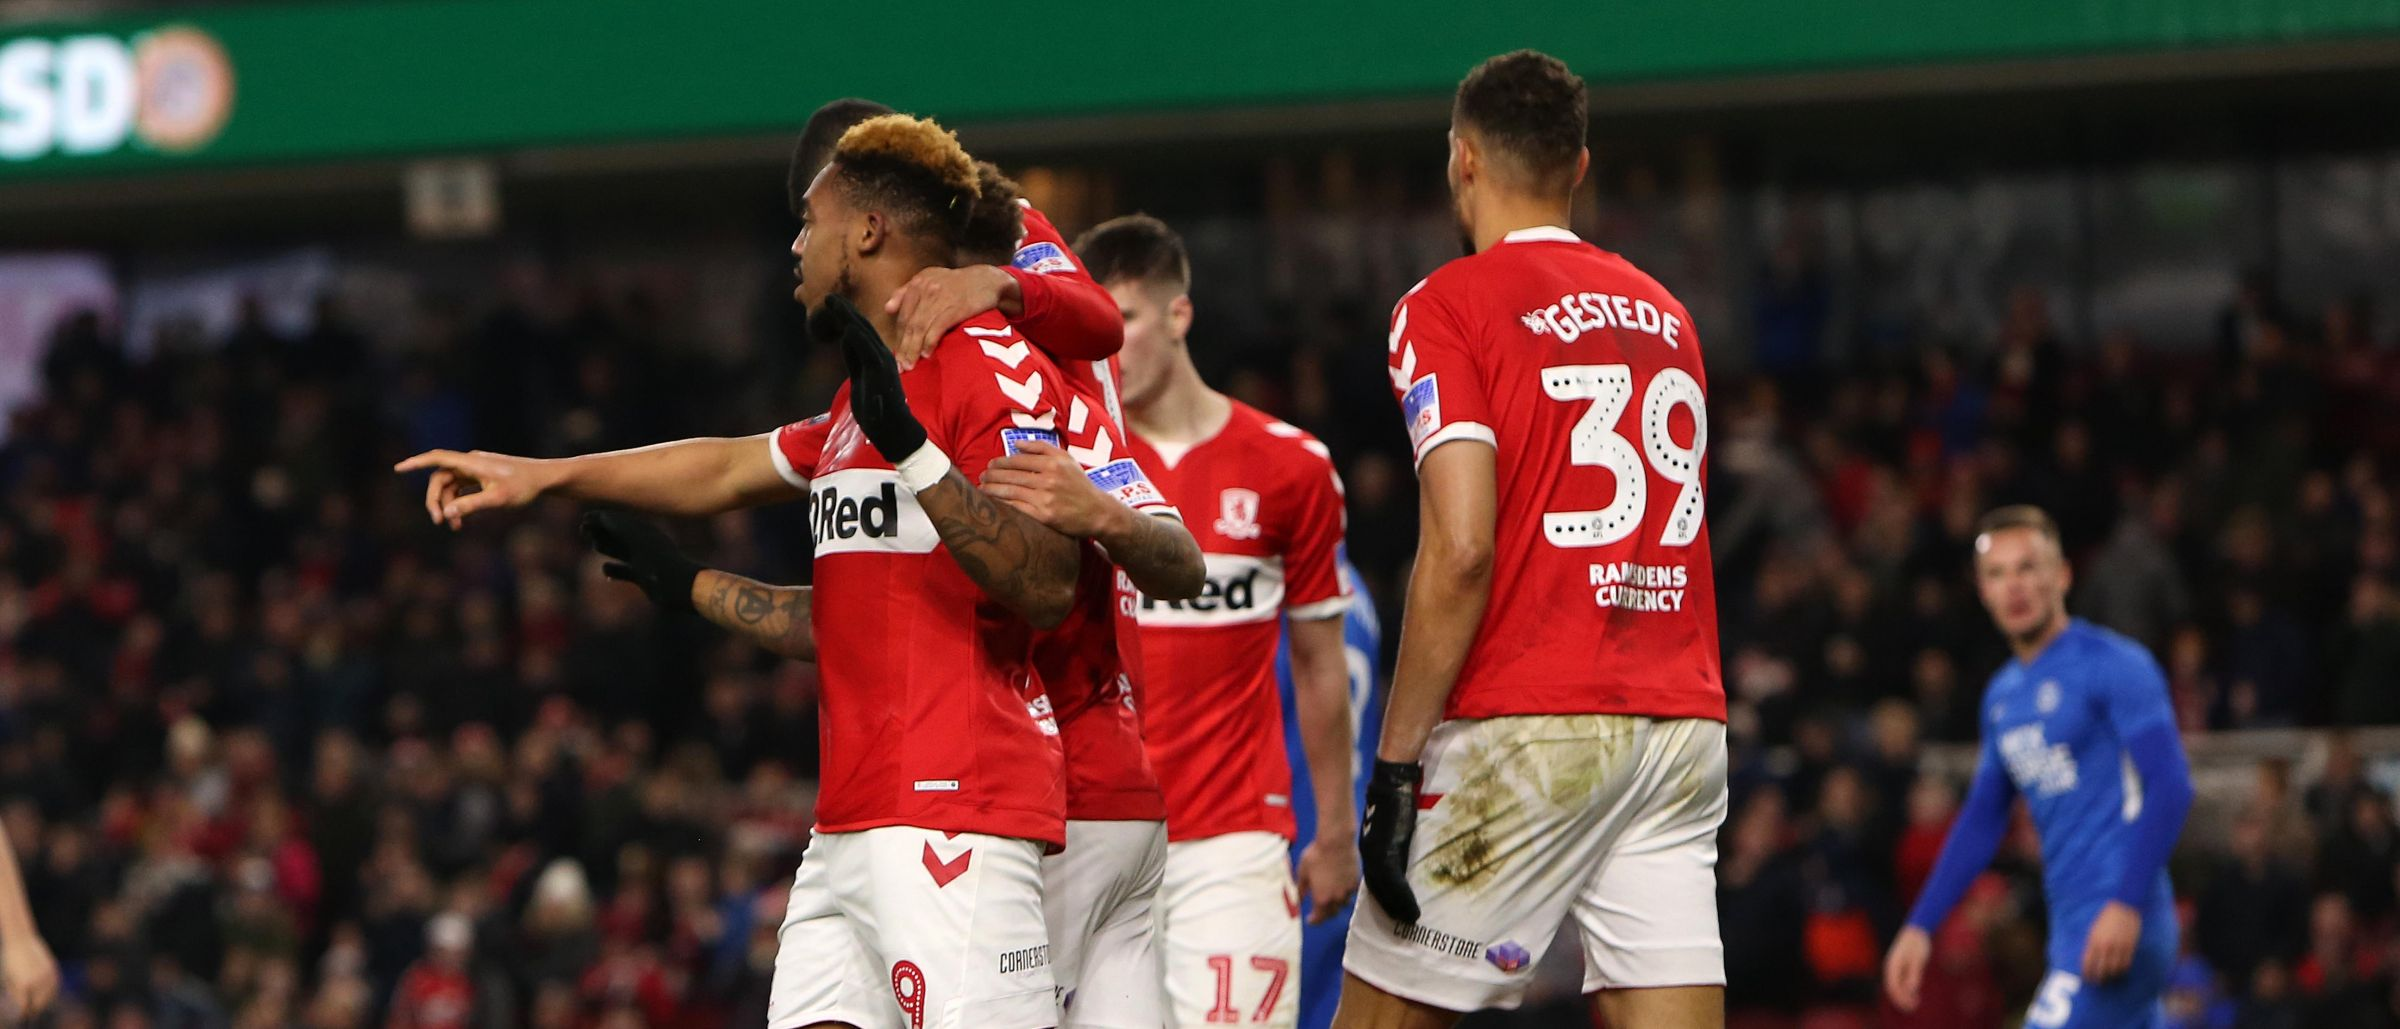 Britt is robbed by his teammates as he scores Boro's first goal